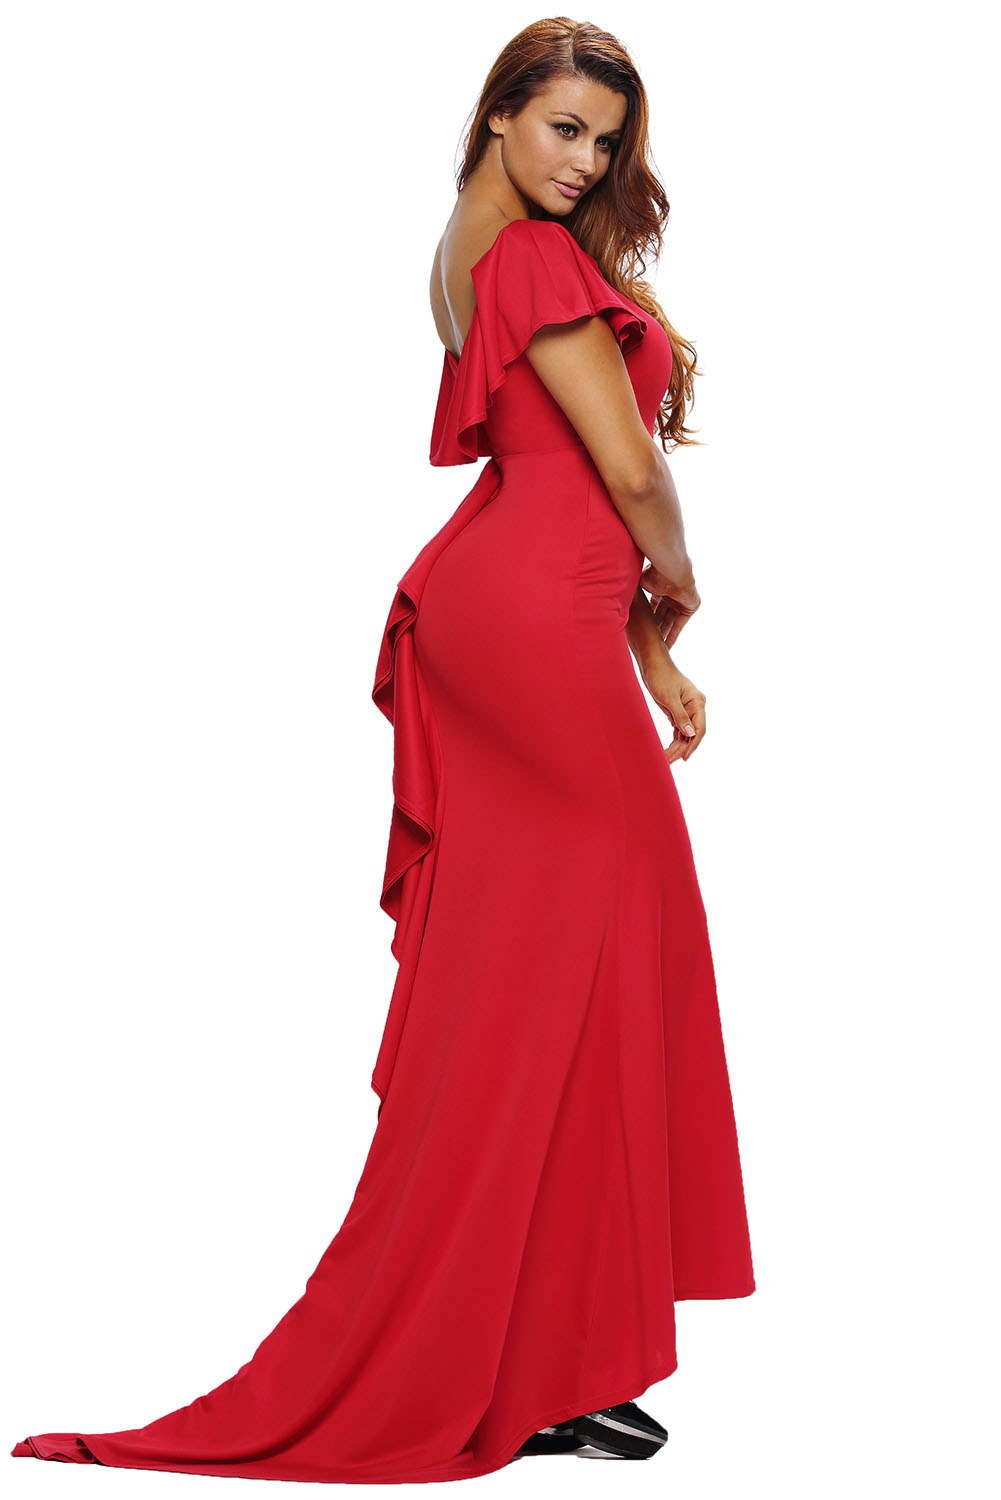 Women Gorgeous Ruffle Accent Hot Red Party Gown Dress Stage Dance ...